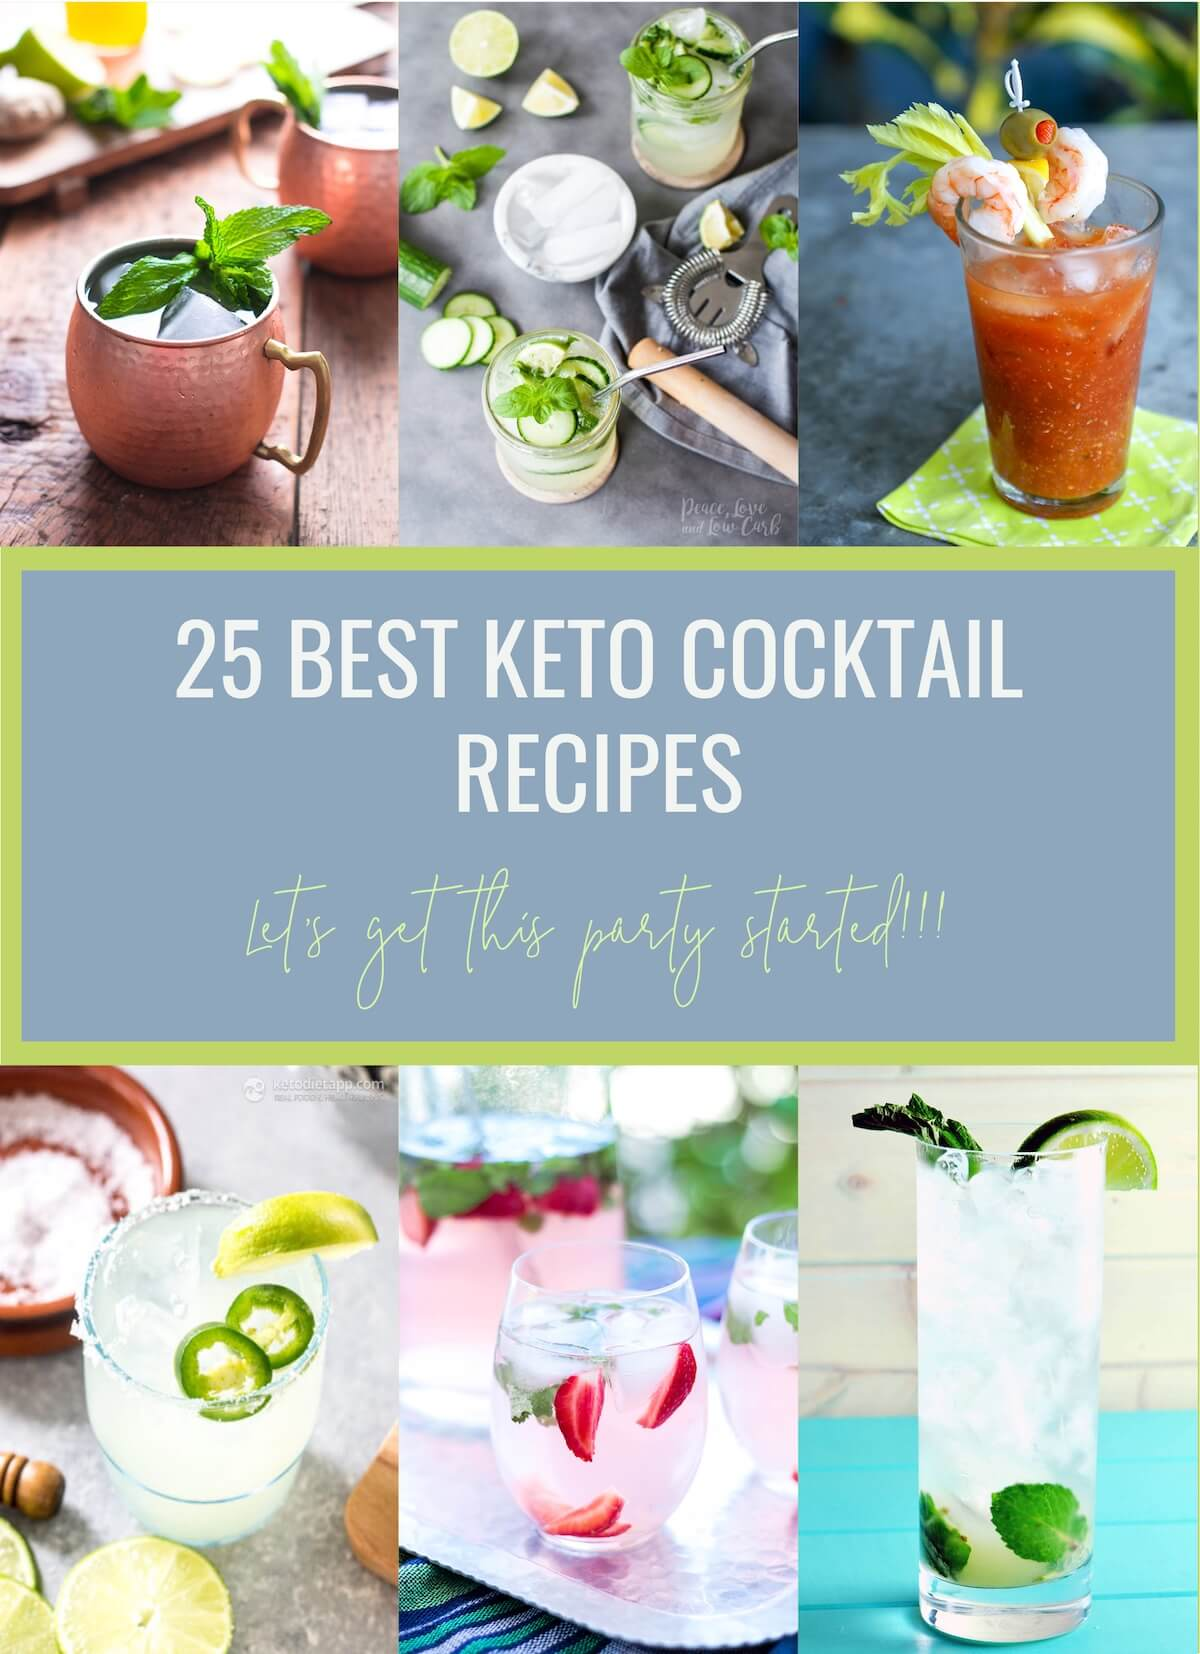 25 Best Ideas About Football Nails On Pinterest: 25 Best Keto Cocktail Recipes - Low Carb